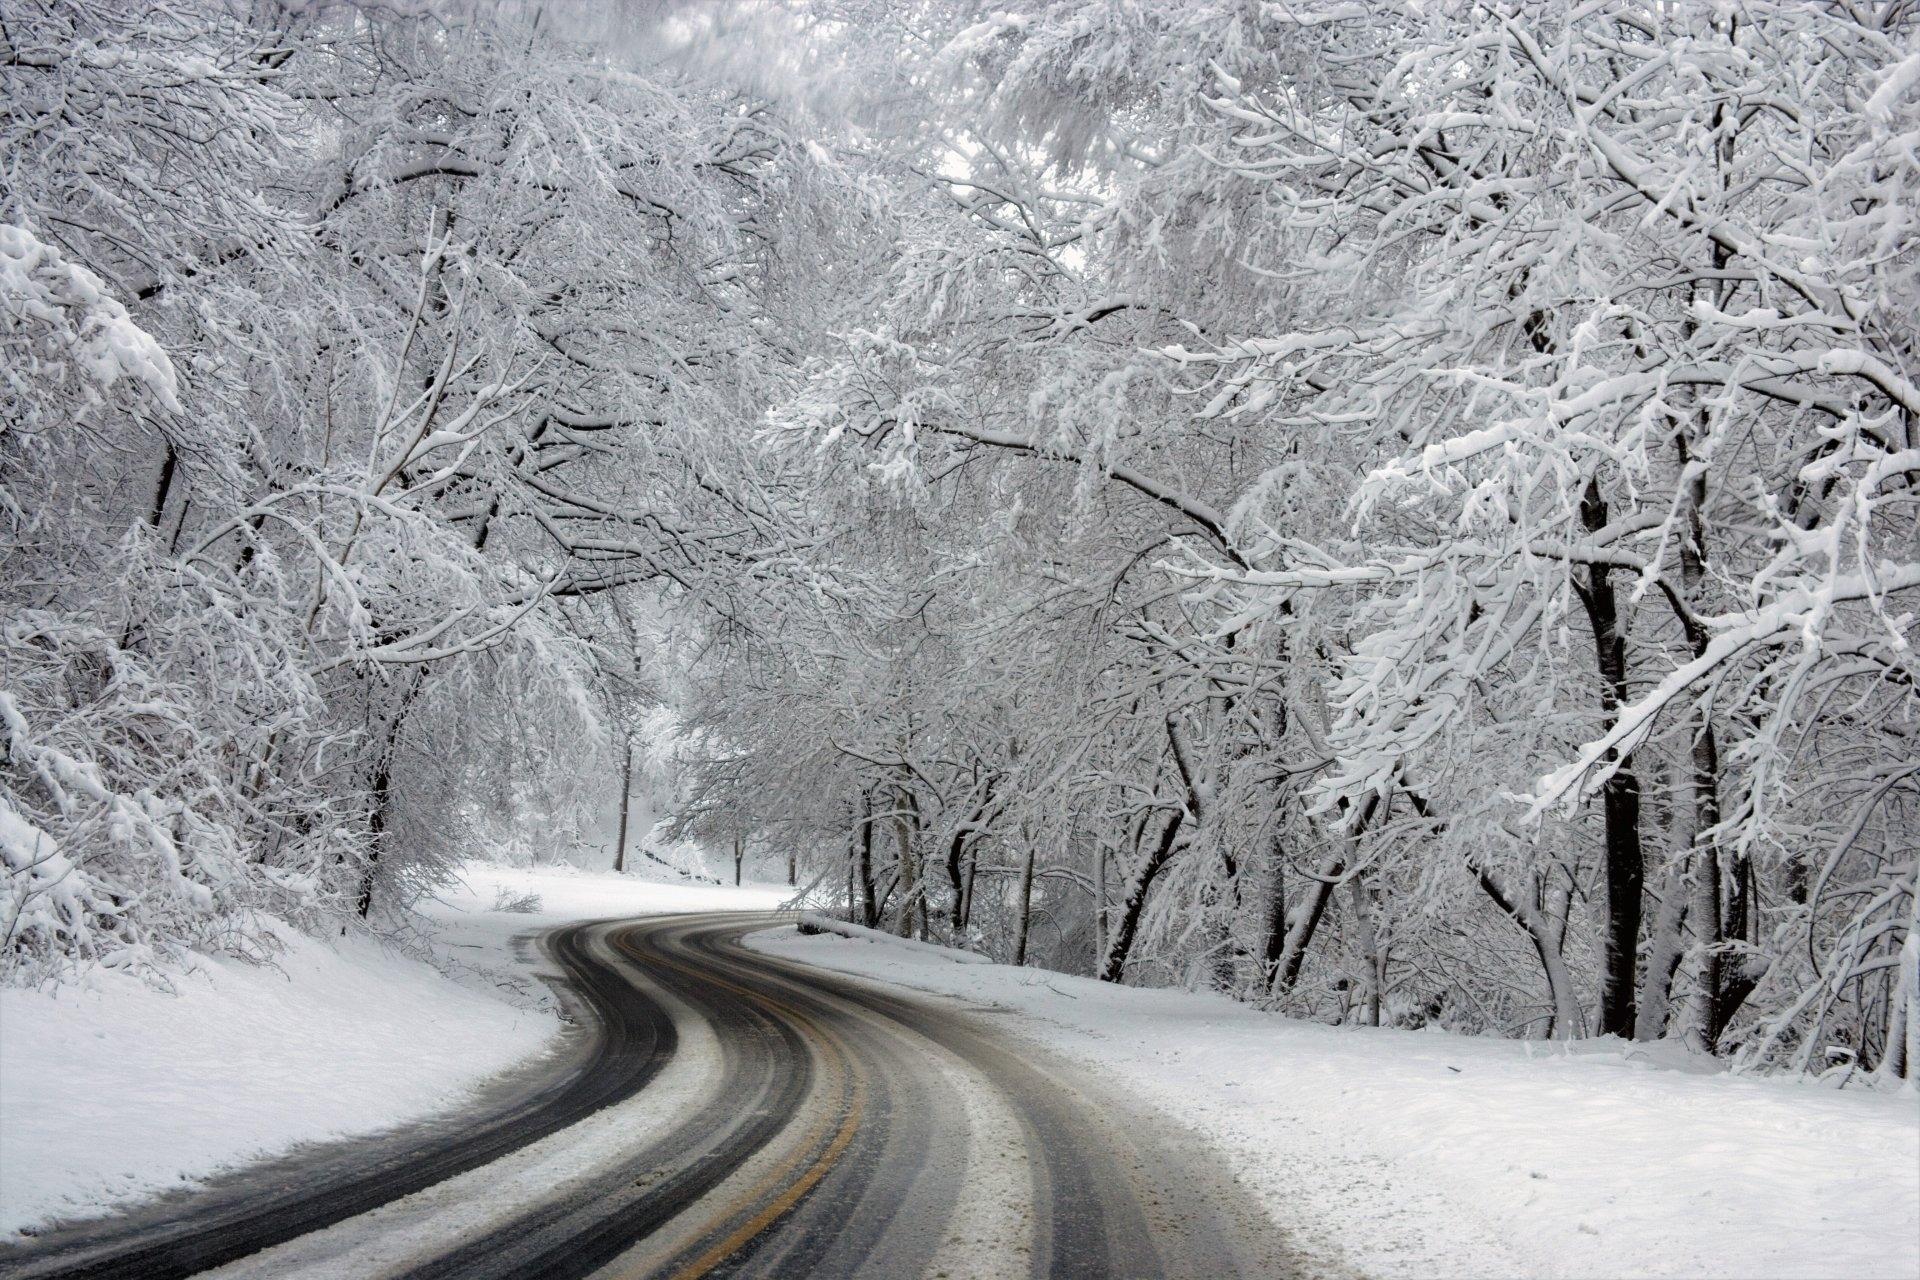 Man Made - Road  Earth Winter Snow Tree Forest Wallpaper